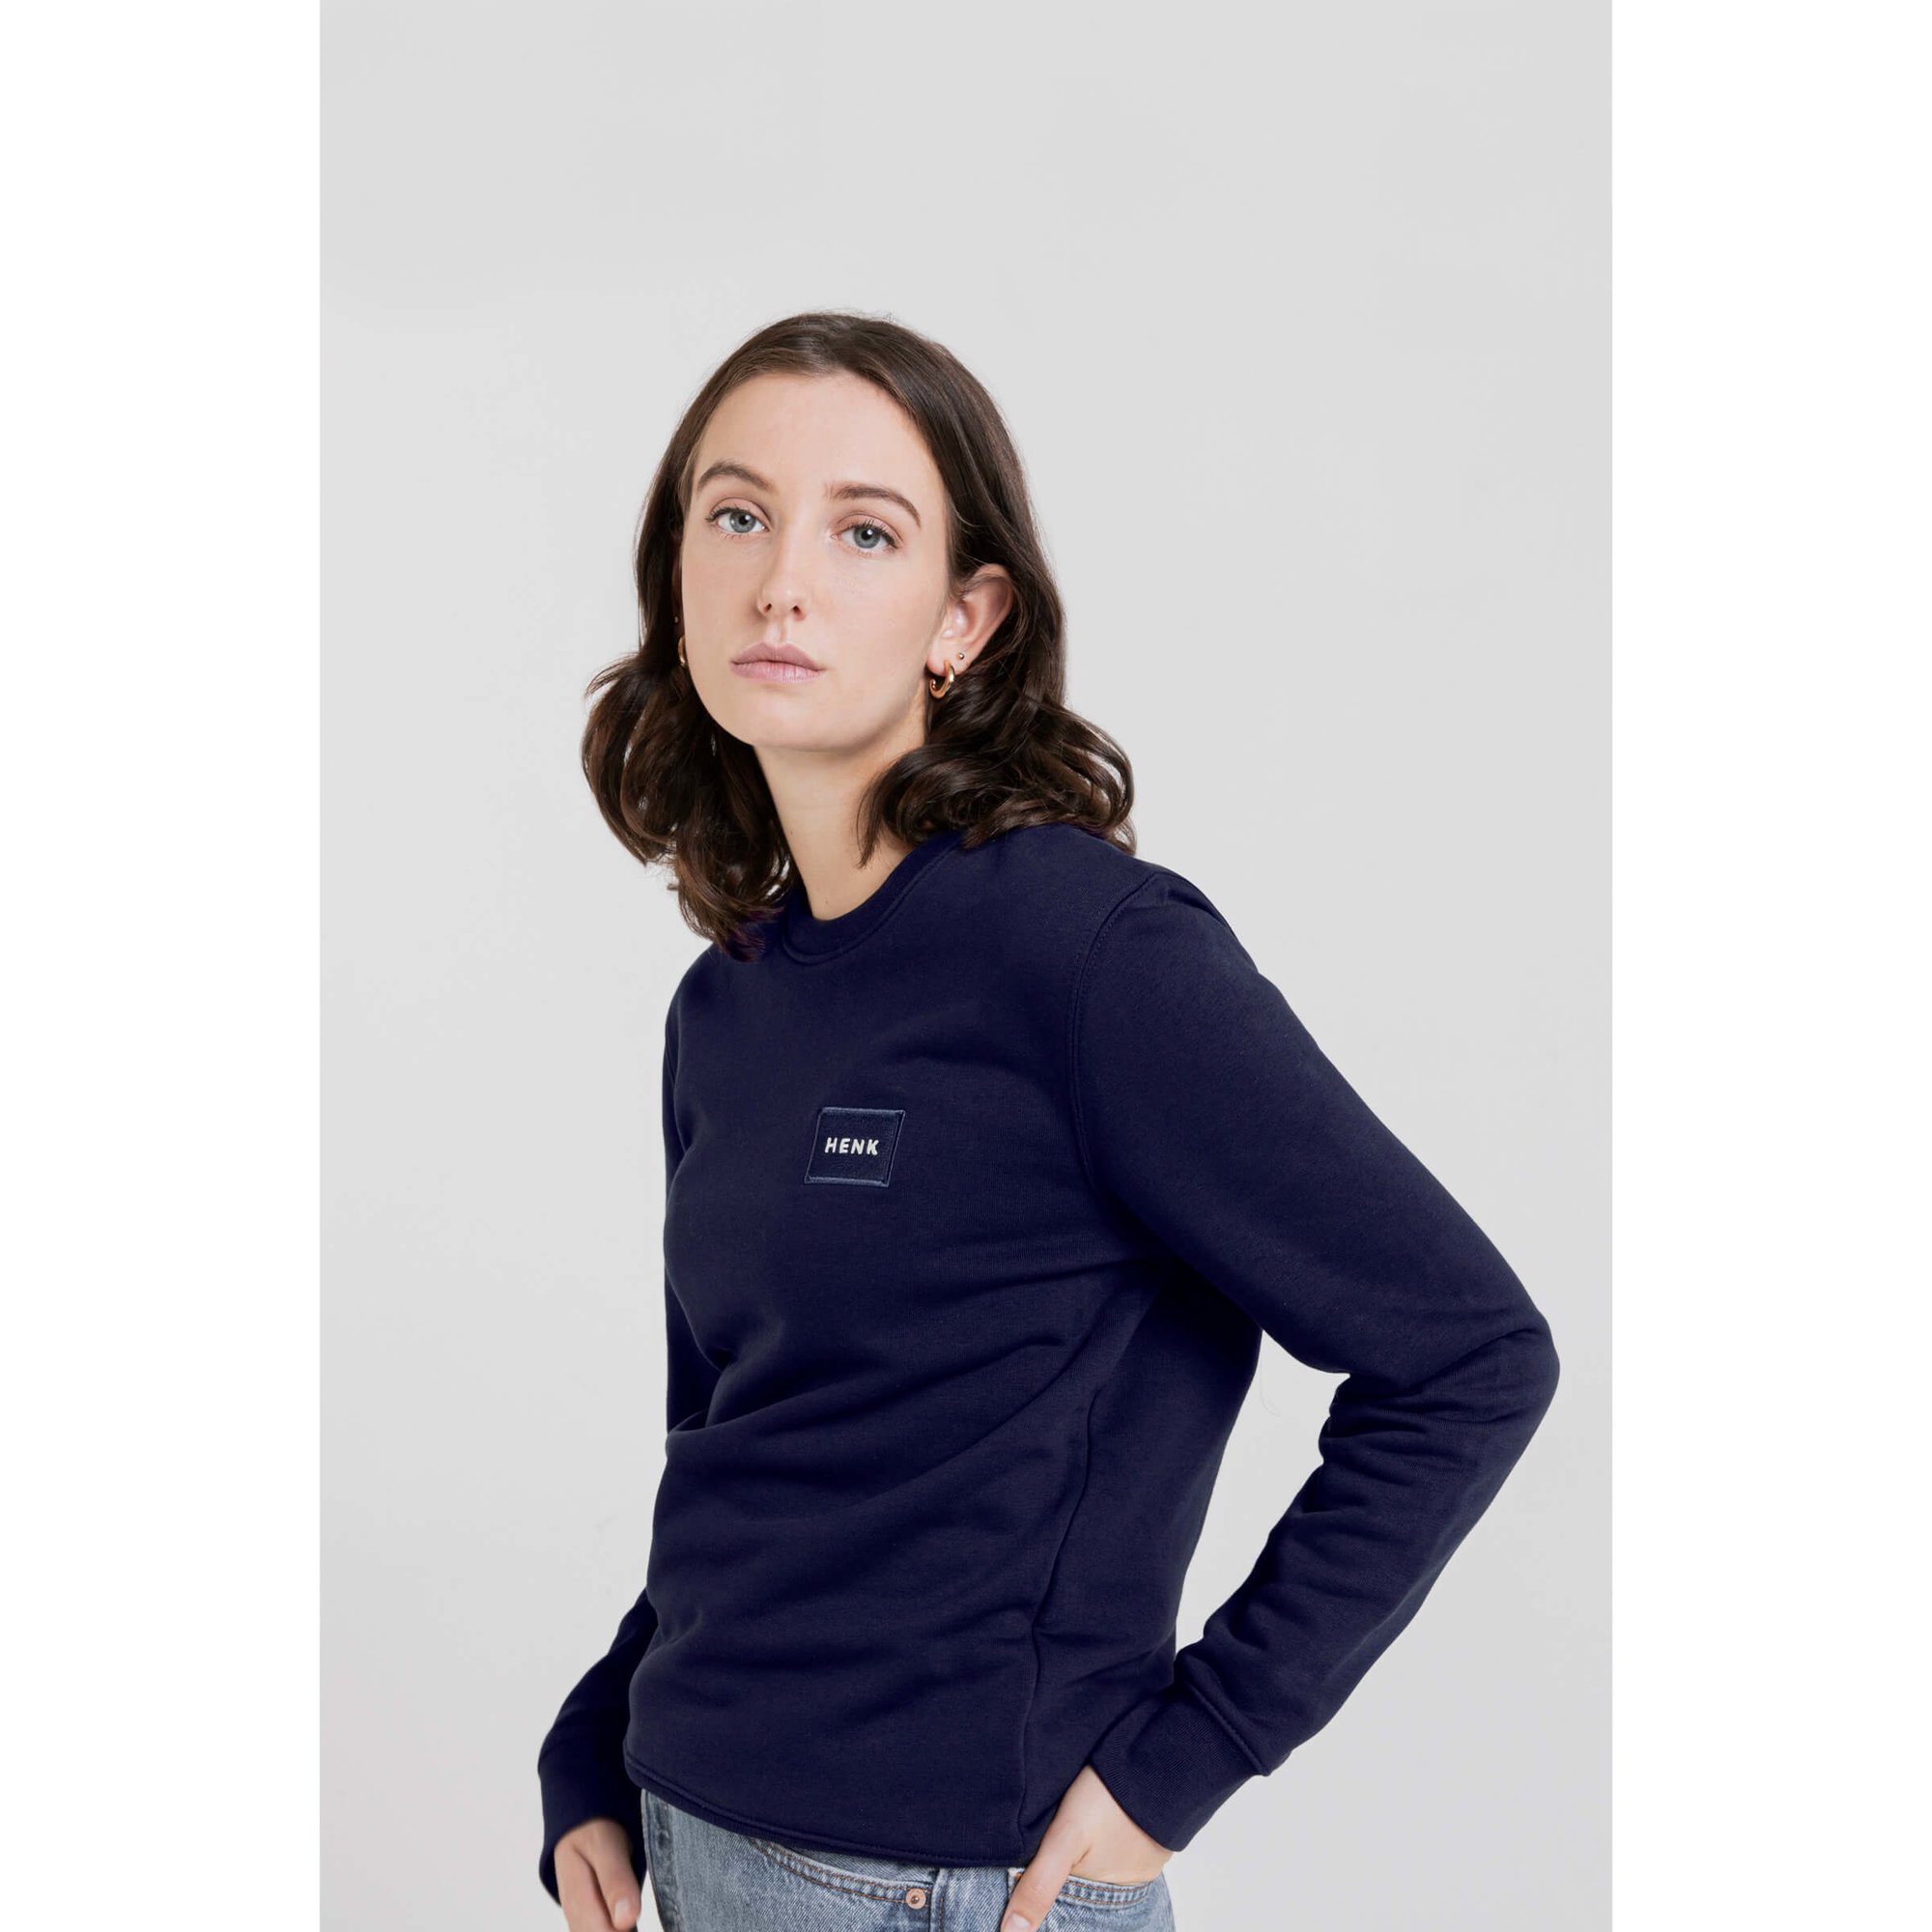 Sweater | Navy | Studio HENK | Setting5